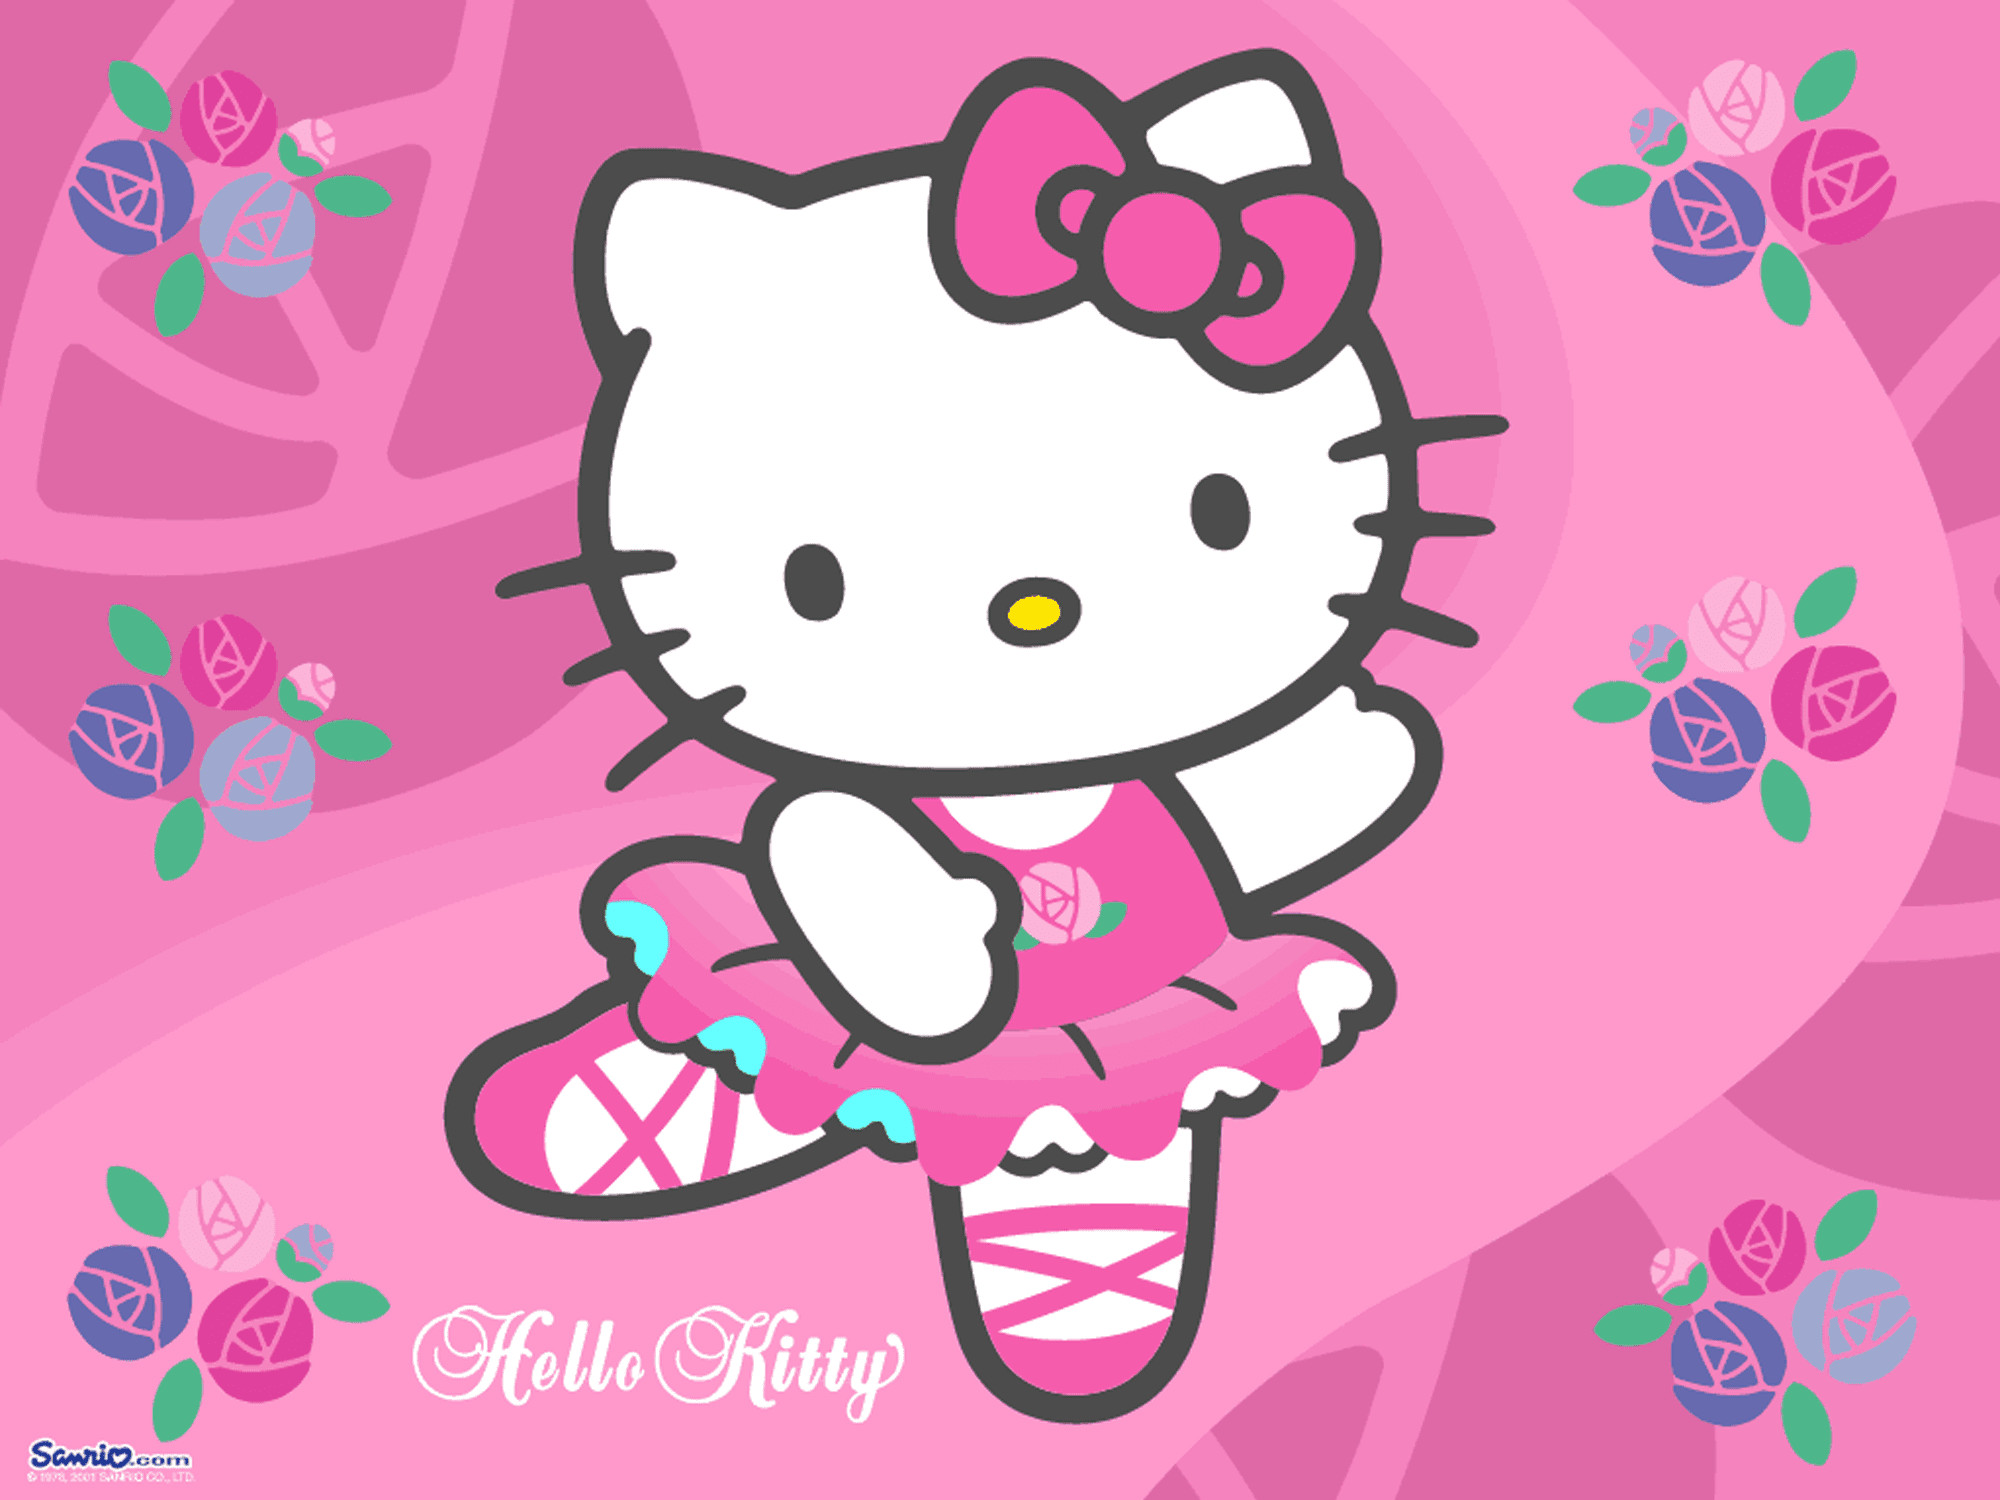 Cool Wallpaper Hello Kitty Iphone 5 - 875822-hello-kitty-valentines-wallpaper-2000x1500-for-iphone-5s  You Should Have_759952.jpg